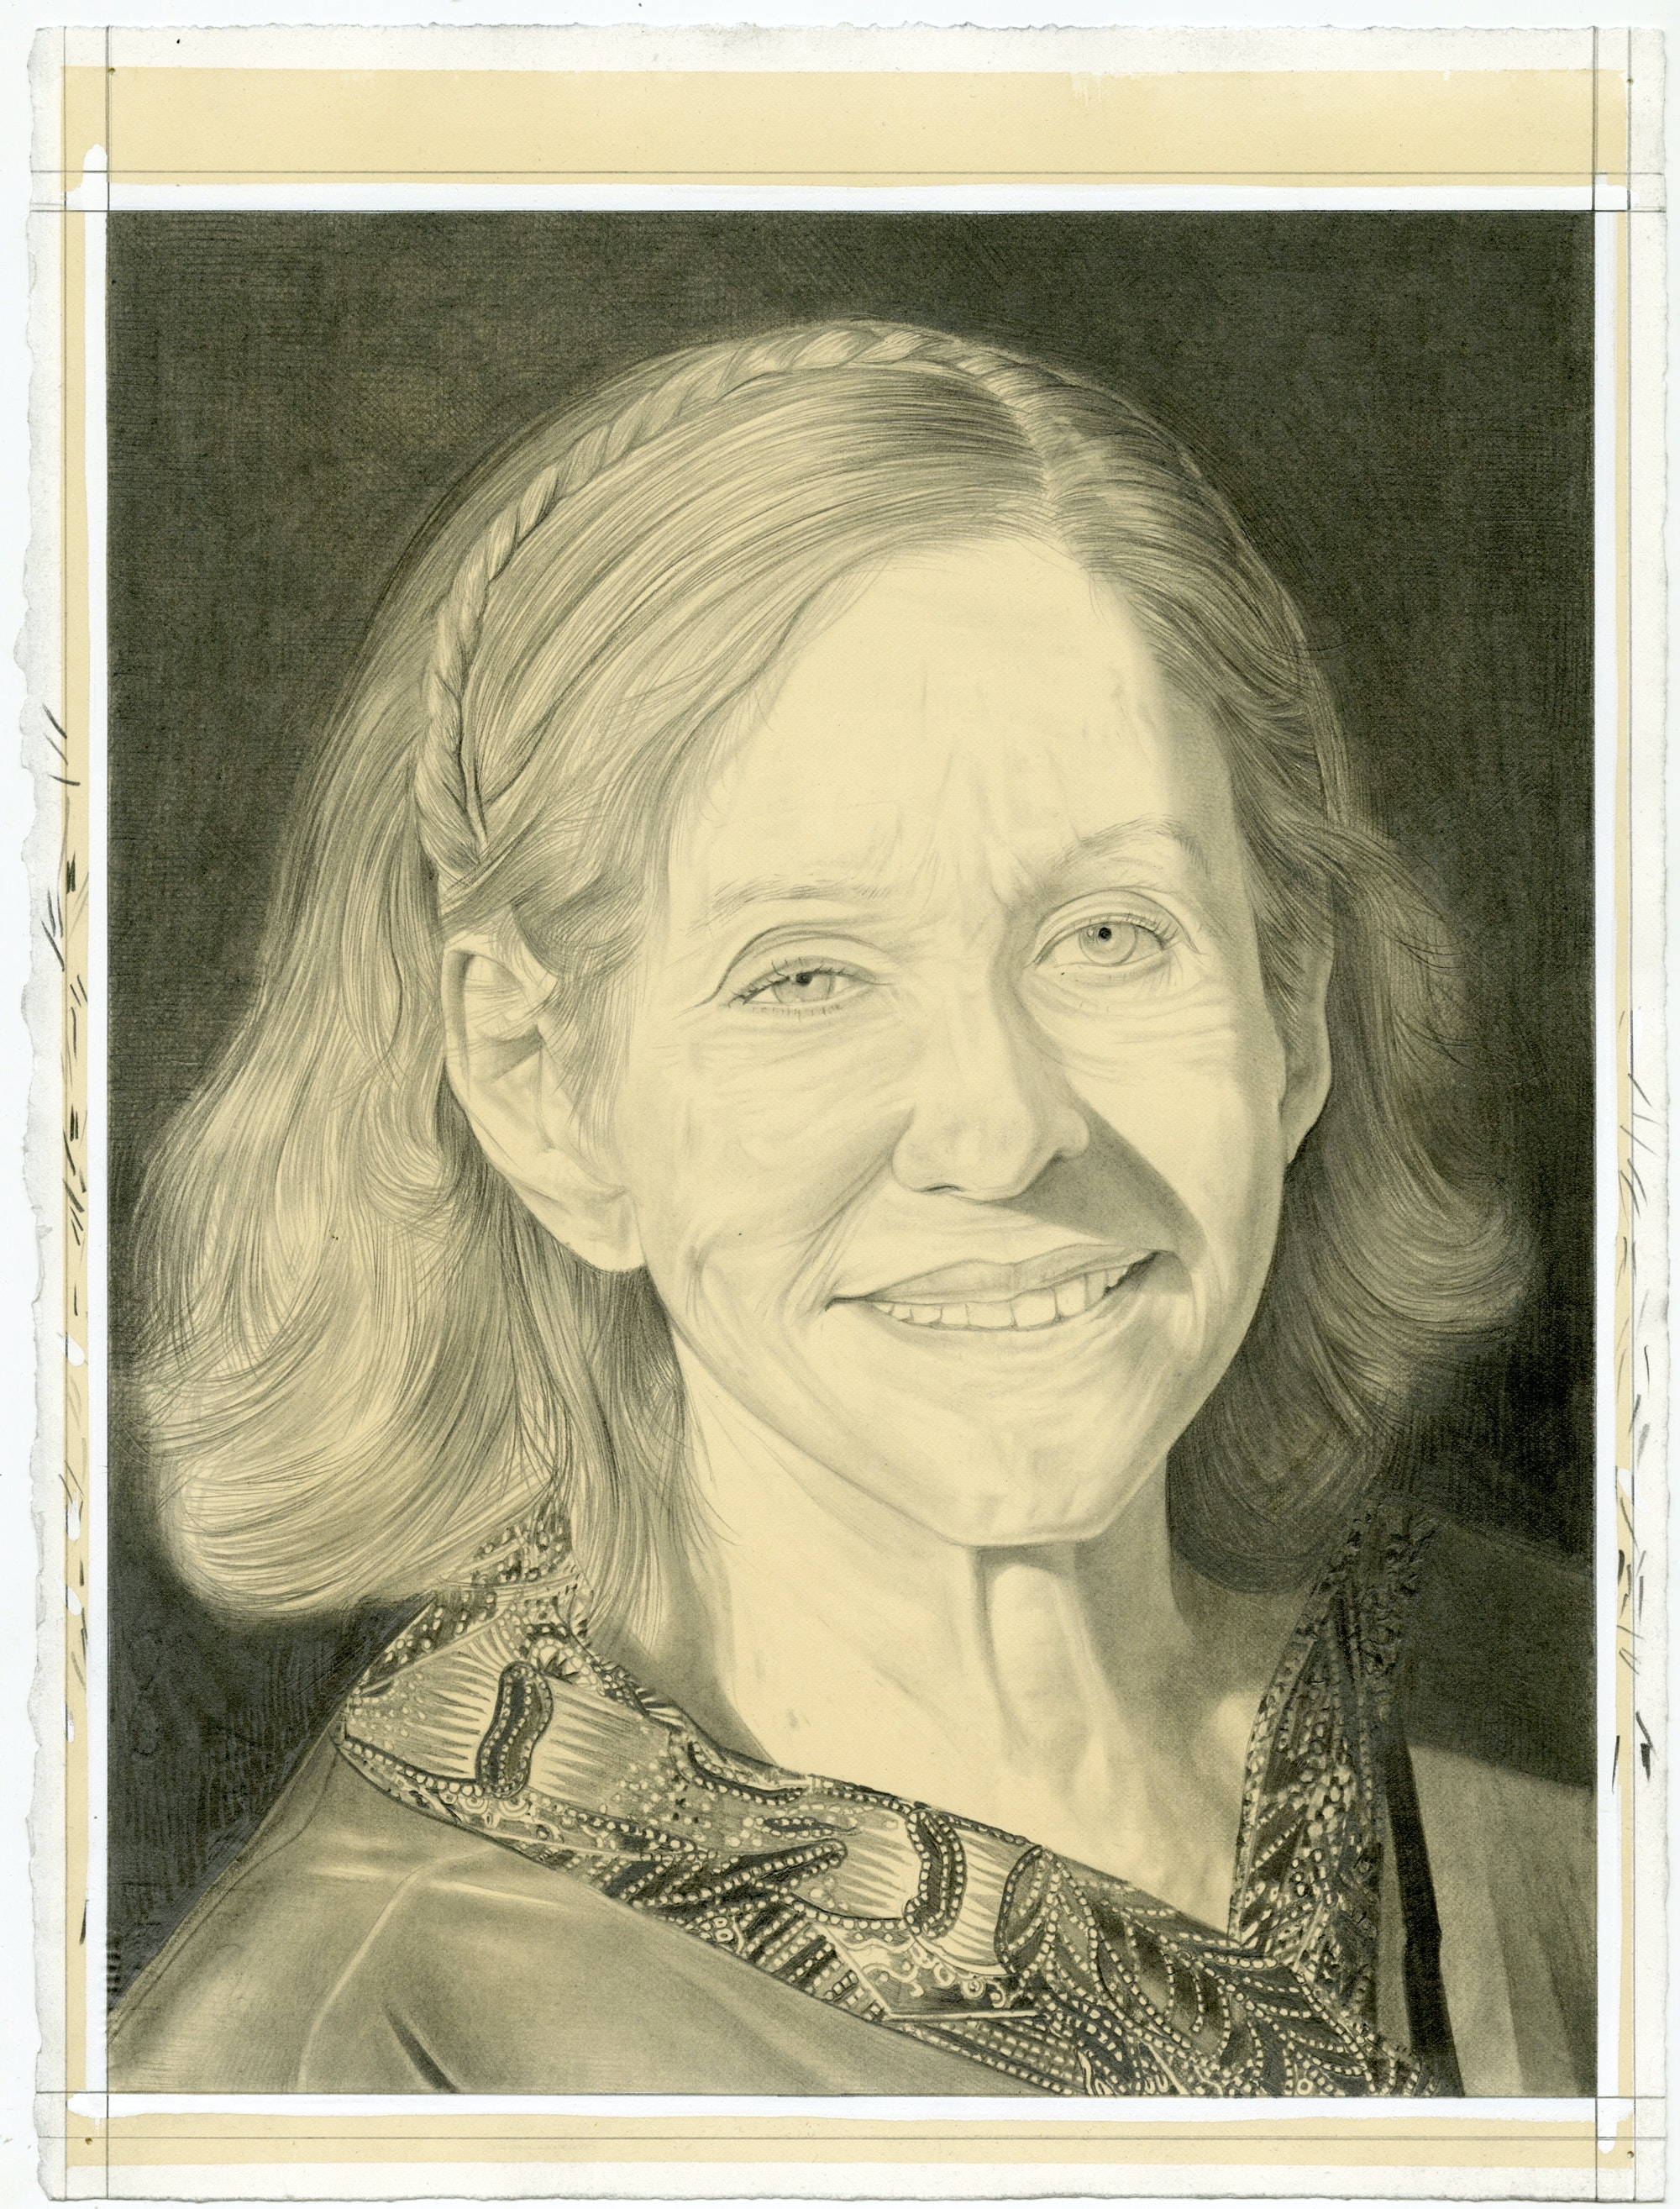 Portrait of Barbara Rose, pencil on paper by Phong H. Bui.